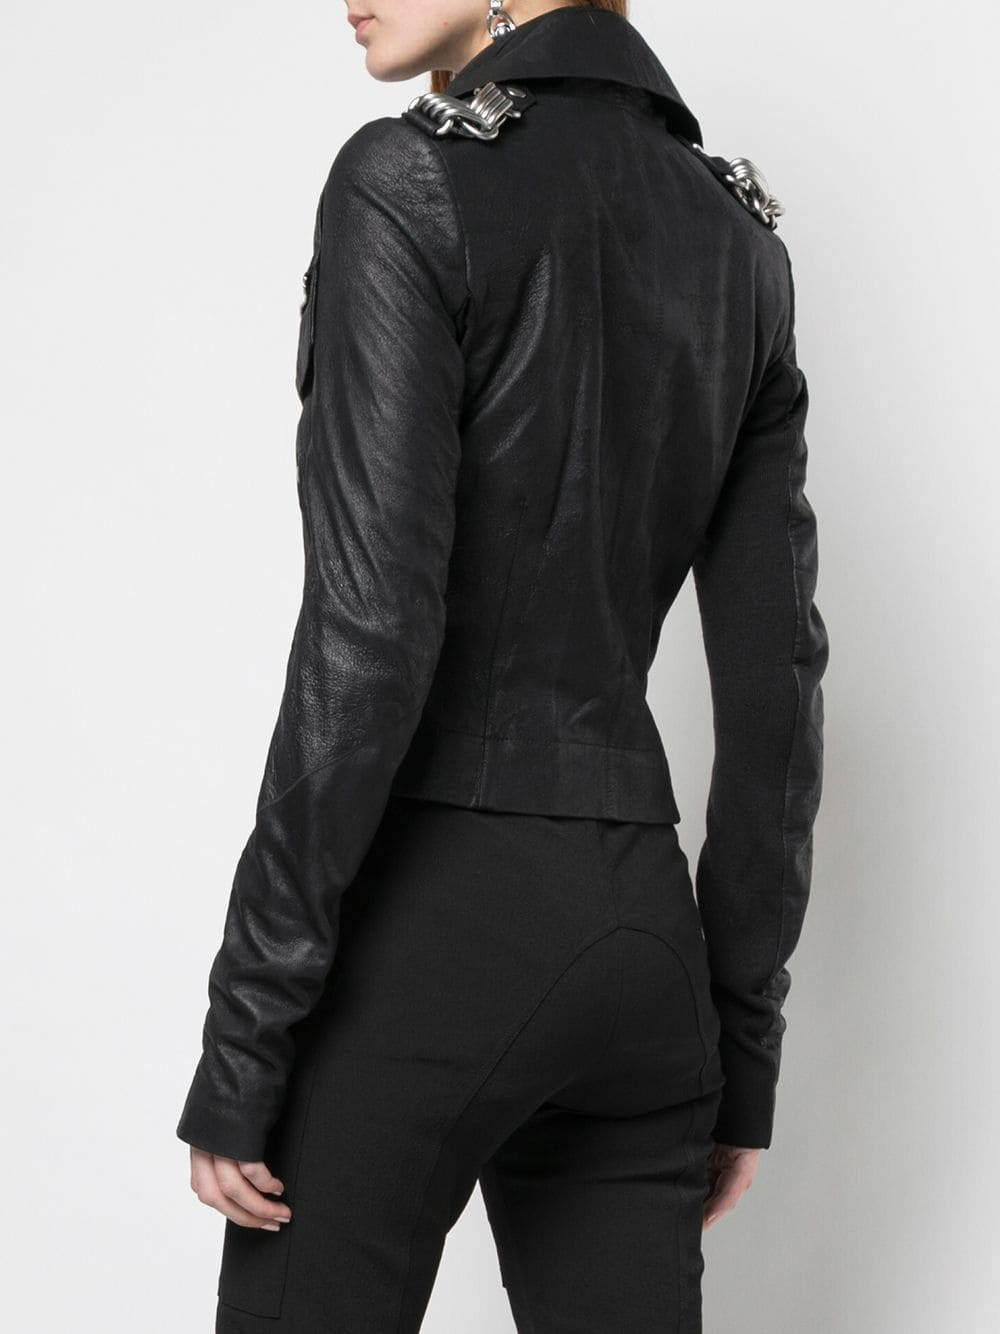 RICK OWENS WOMEN BIKER LEATHER JACKET